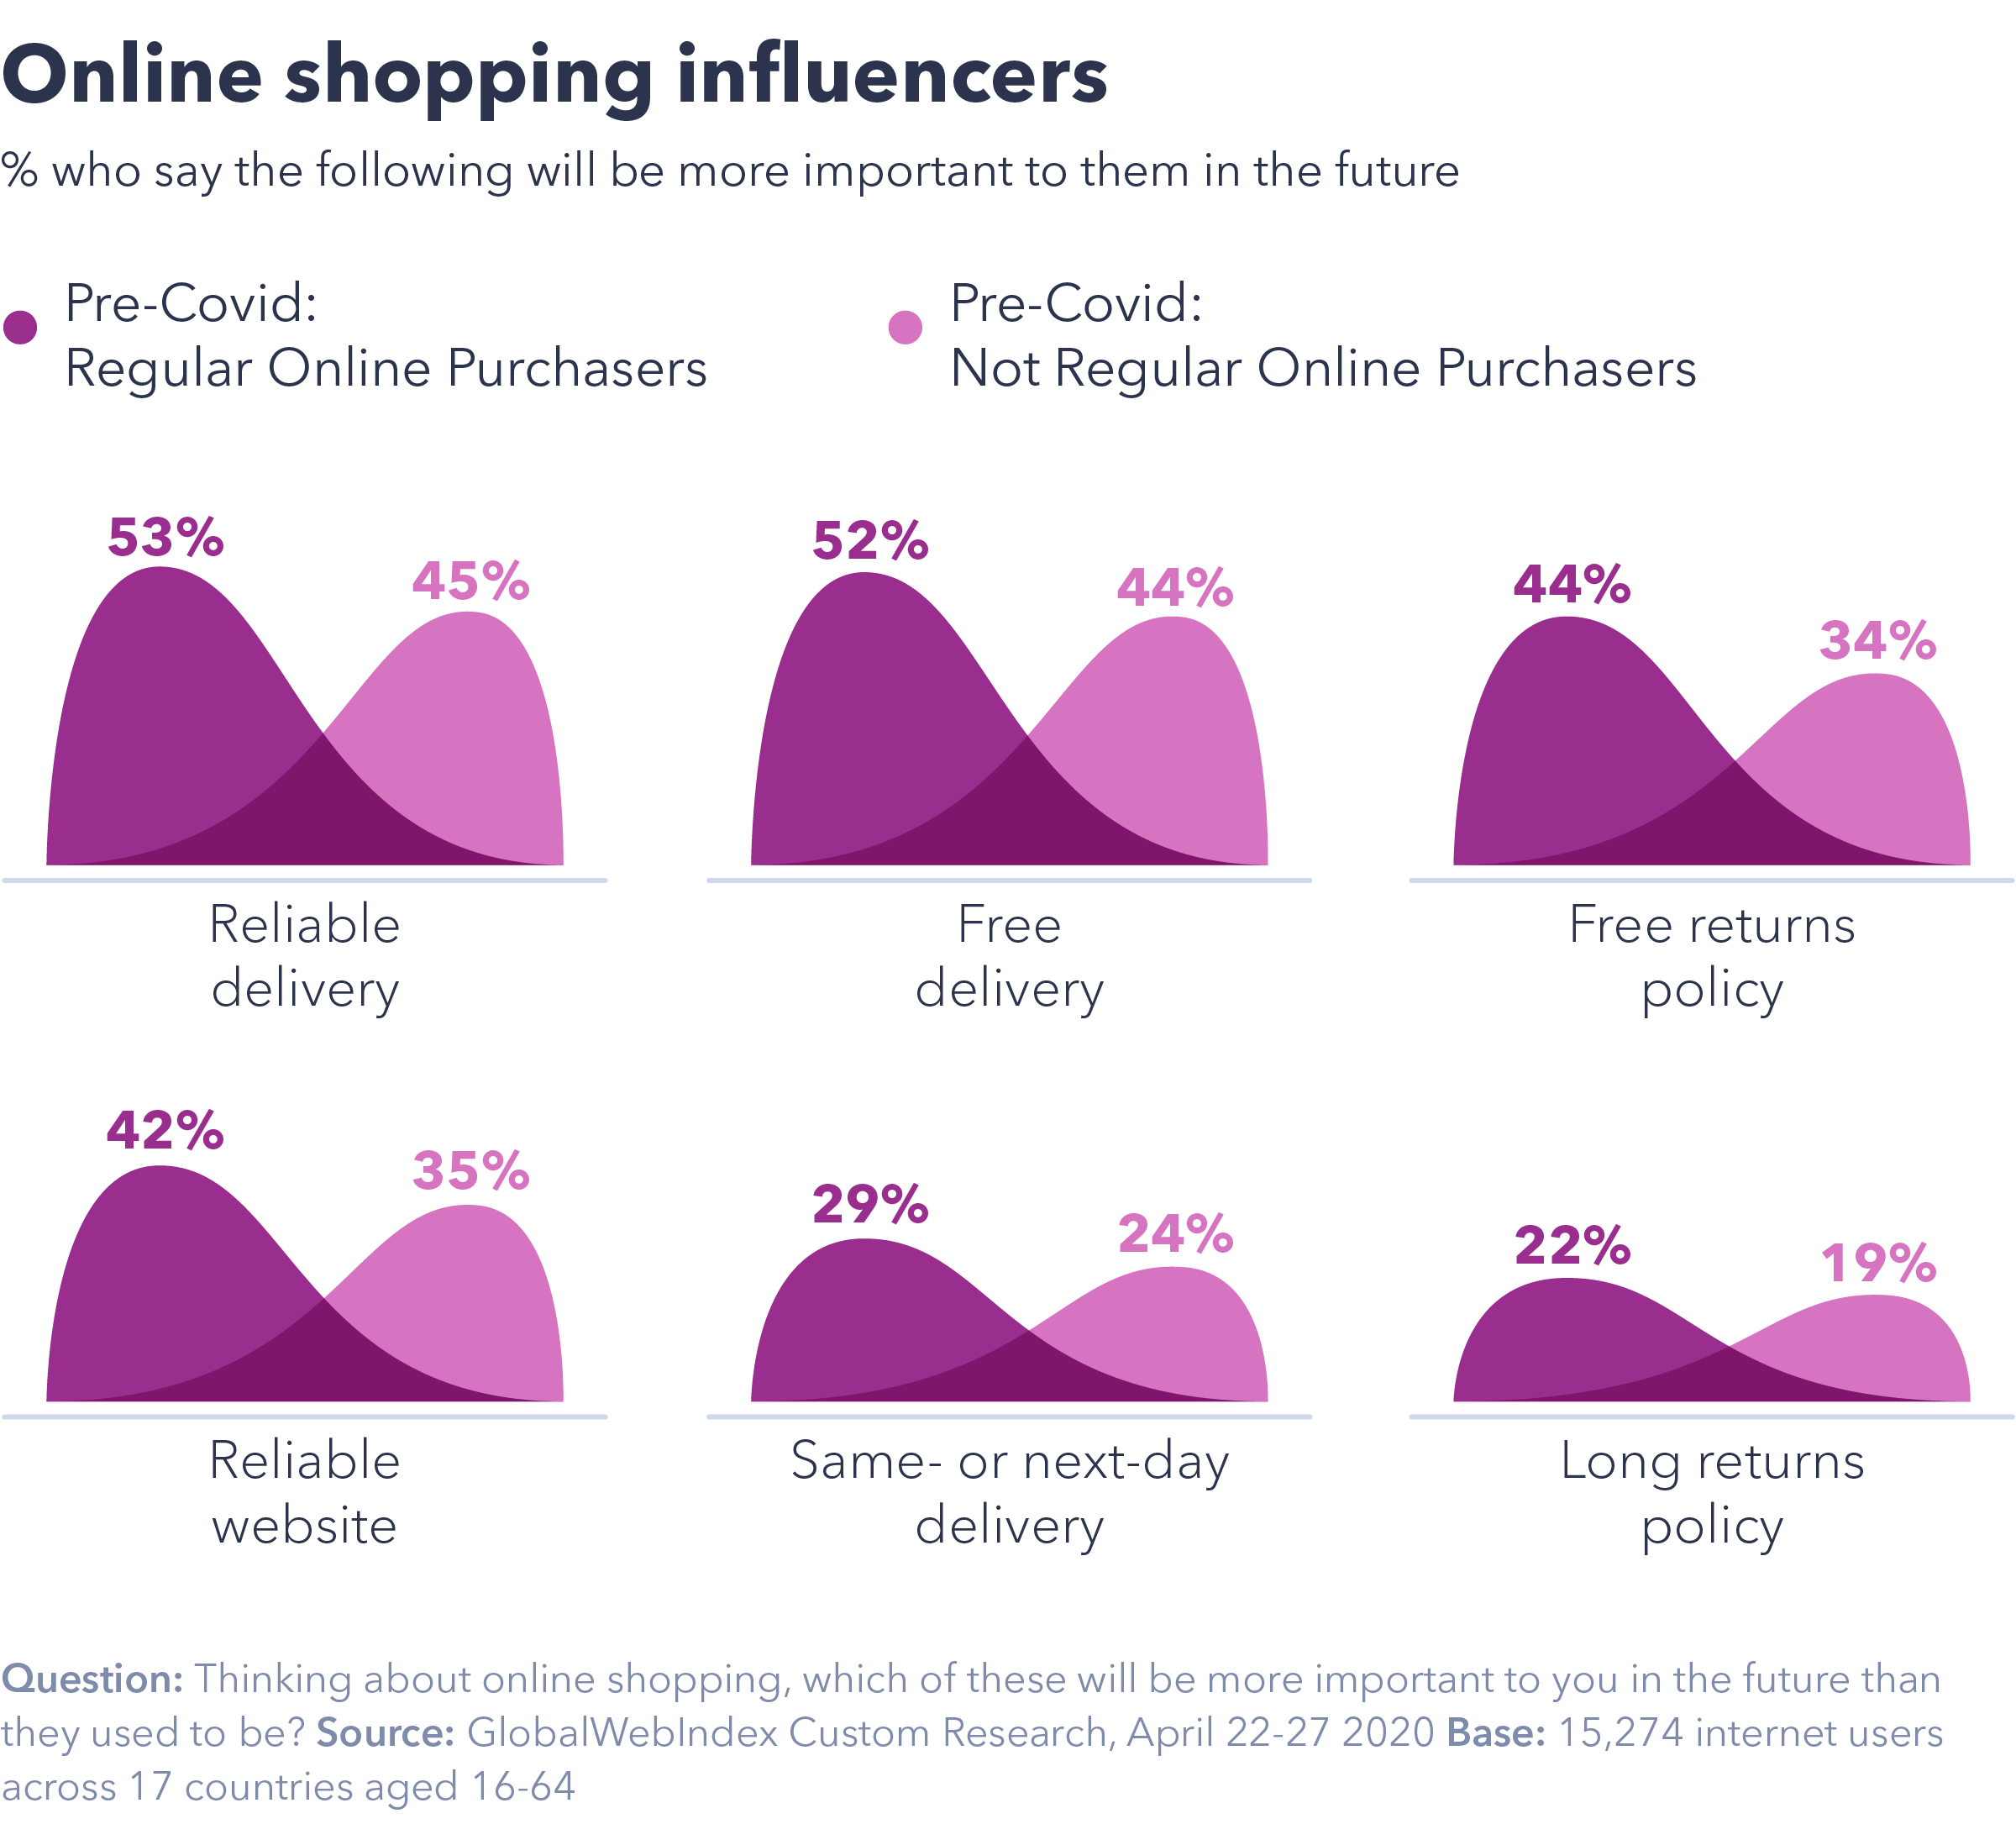 Chart showing online shopping influencers